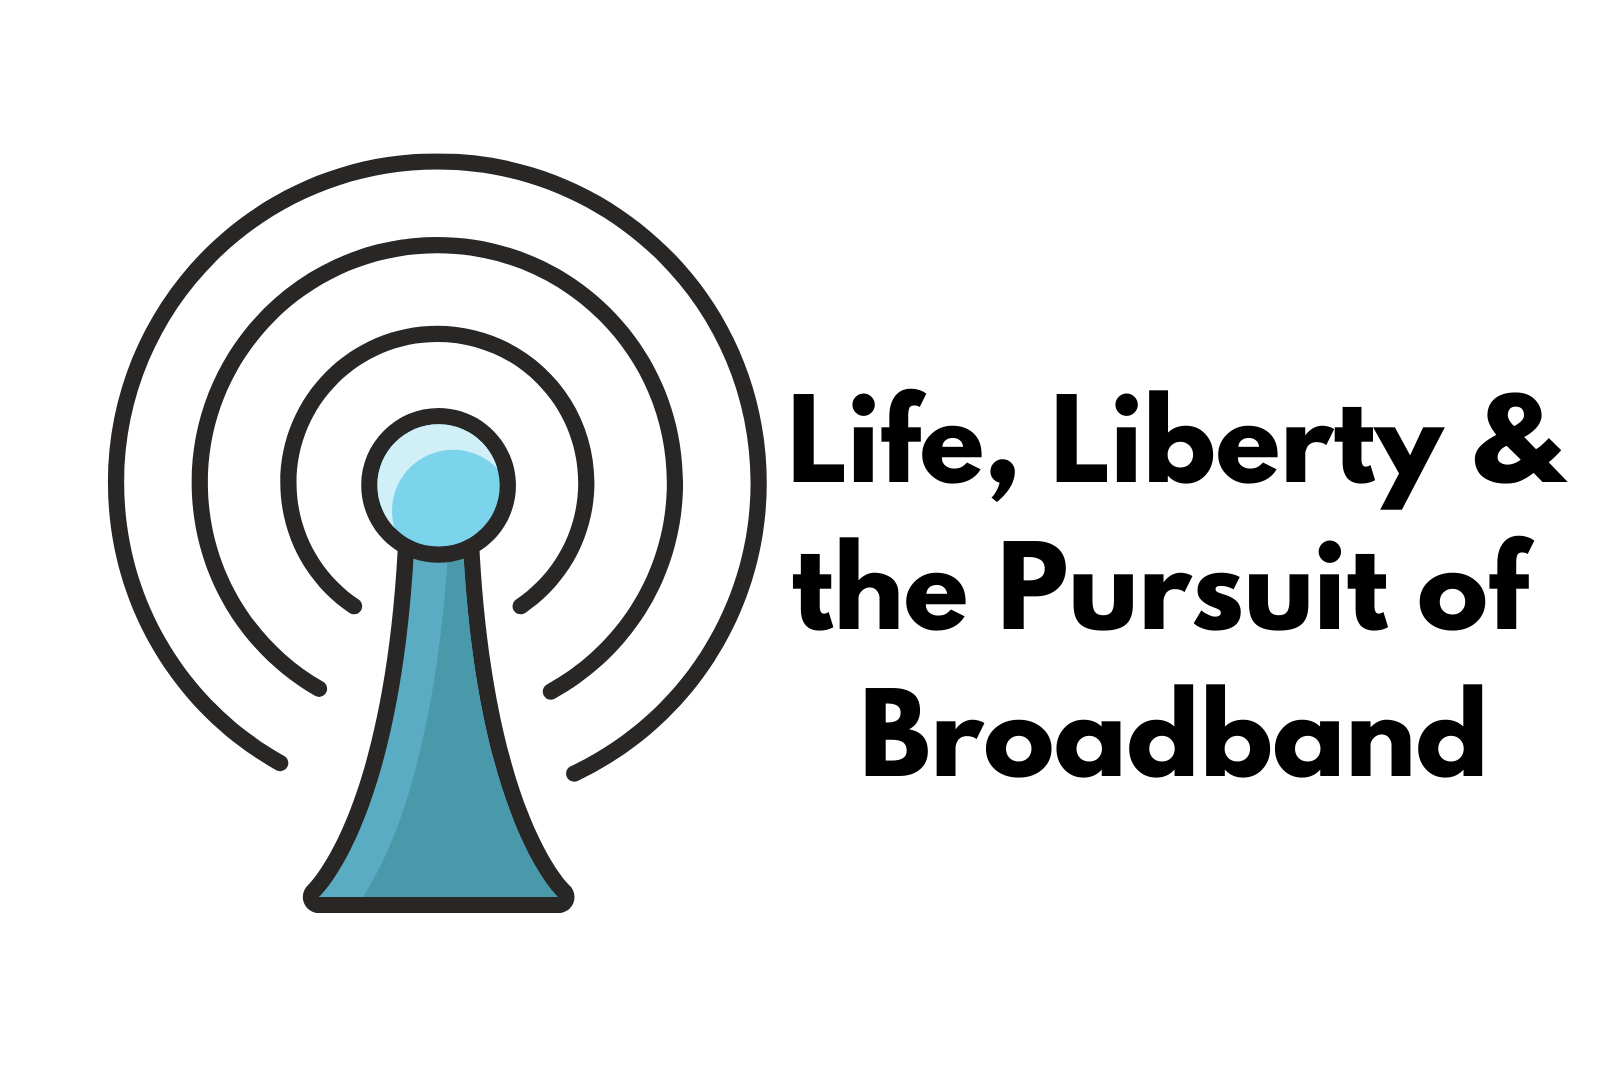 Life, Liberty and the Pursuit of Broadband